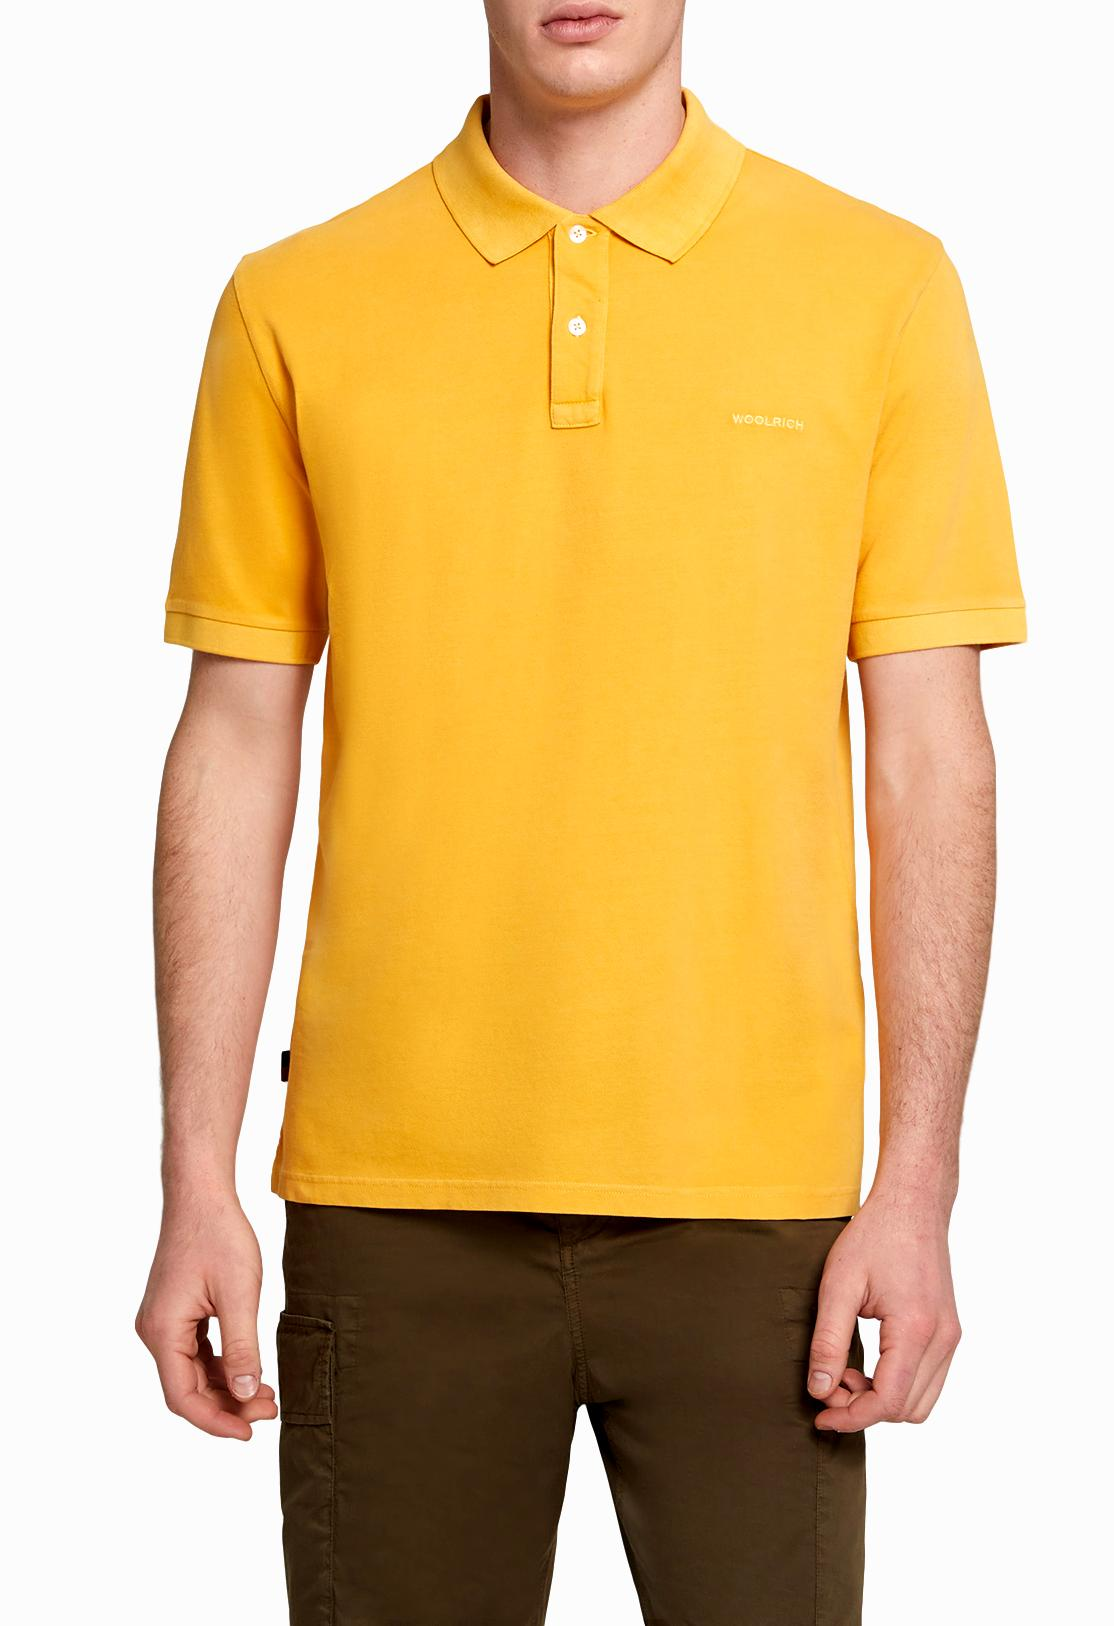 WOOLRICH POLO UOMO Men's Mackinack Polo Shirt Colore: BUDDAGOLD